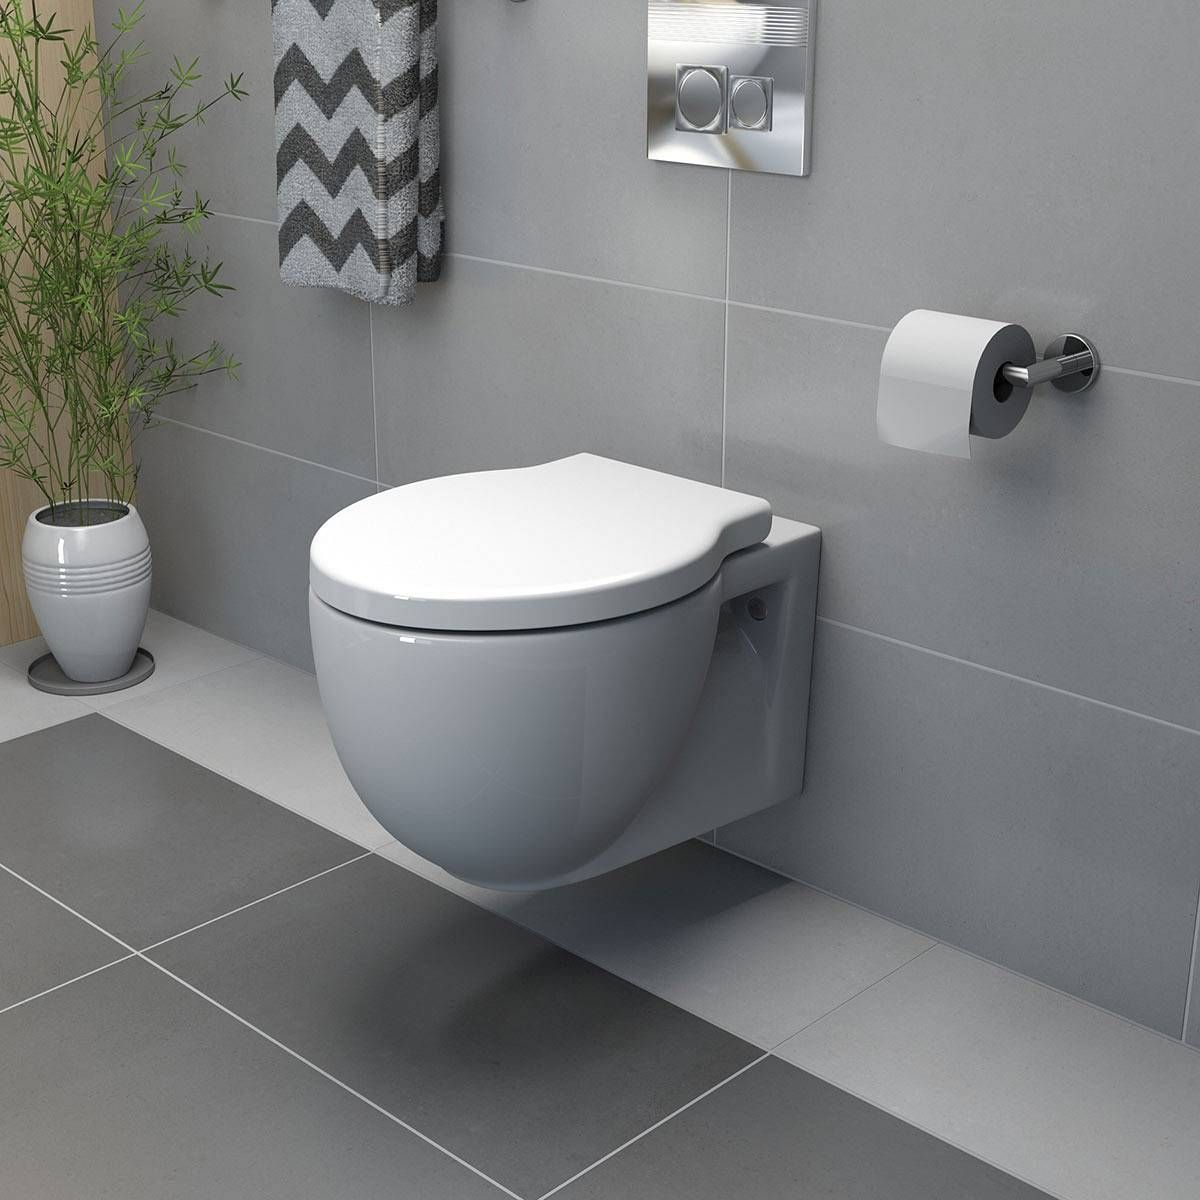 Madison Back to Wall Toilet inc Luxury Soft Close Seat - Victoria Plumb